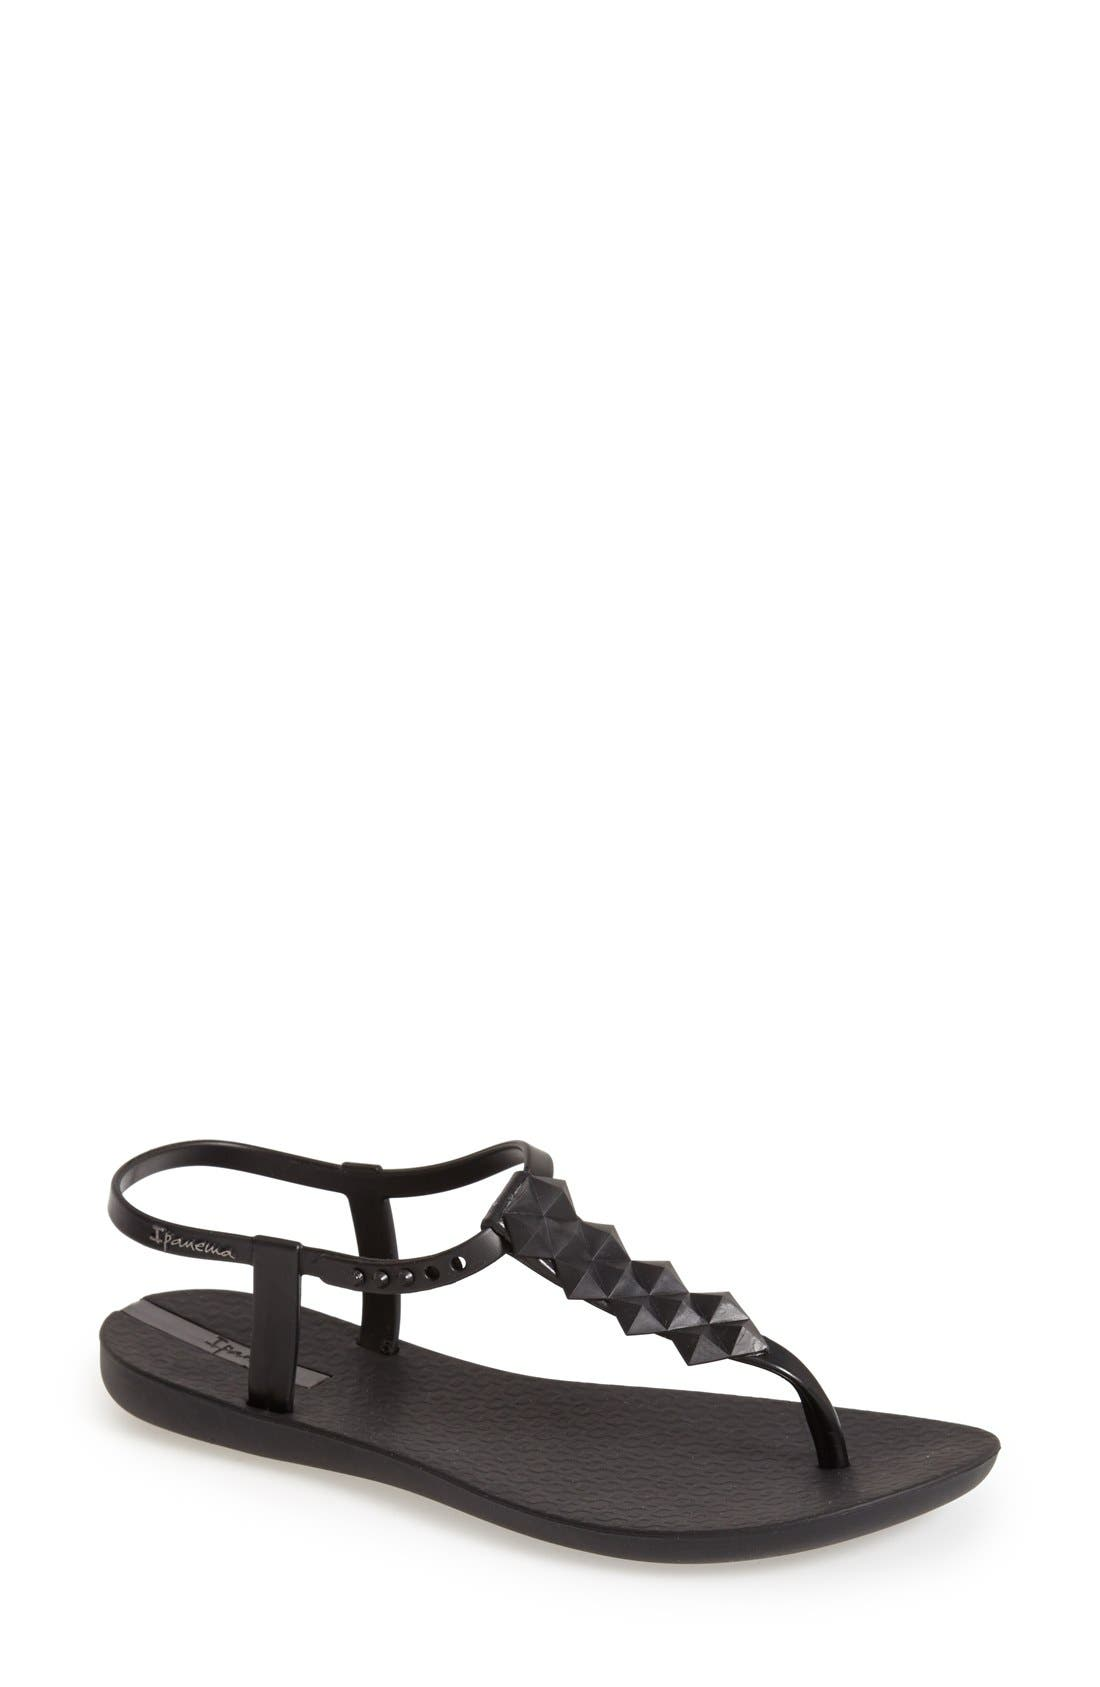 'Cleo' Pyramid Stud Ankle Strap Flip Flop,                             Main thumbnail 1, color,                             001